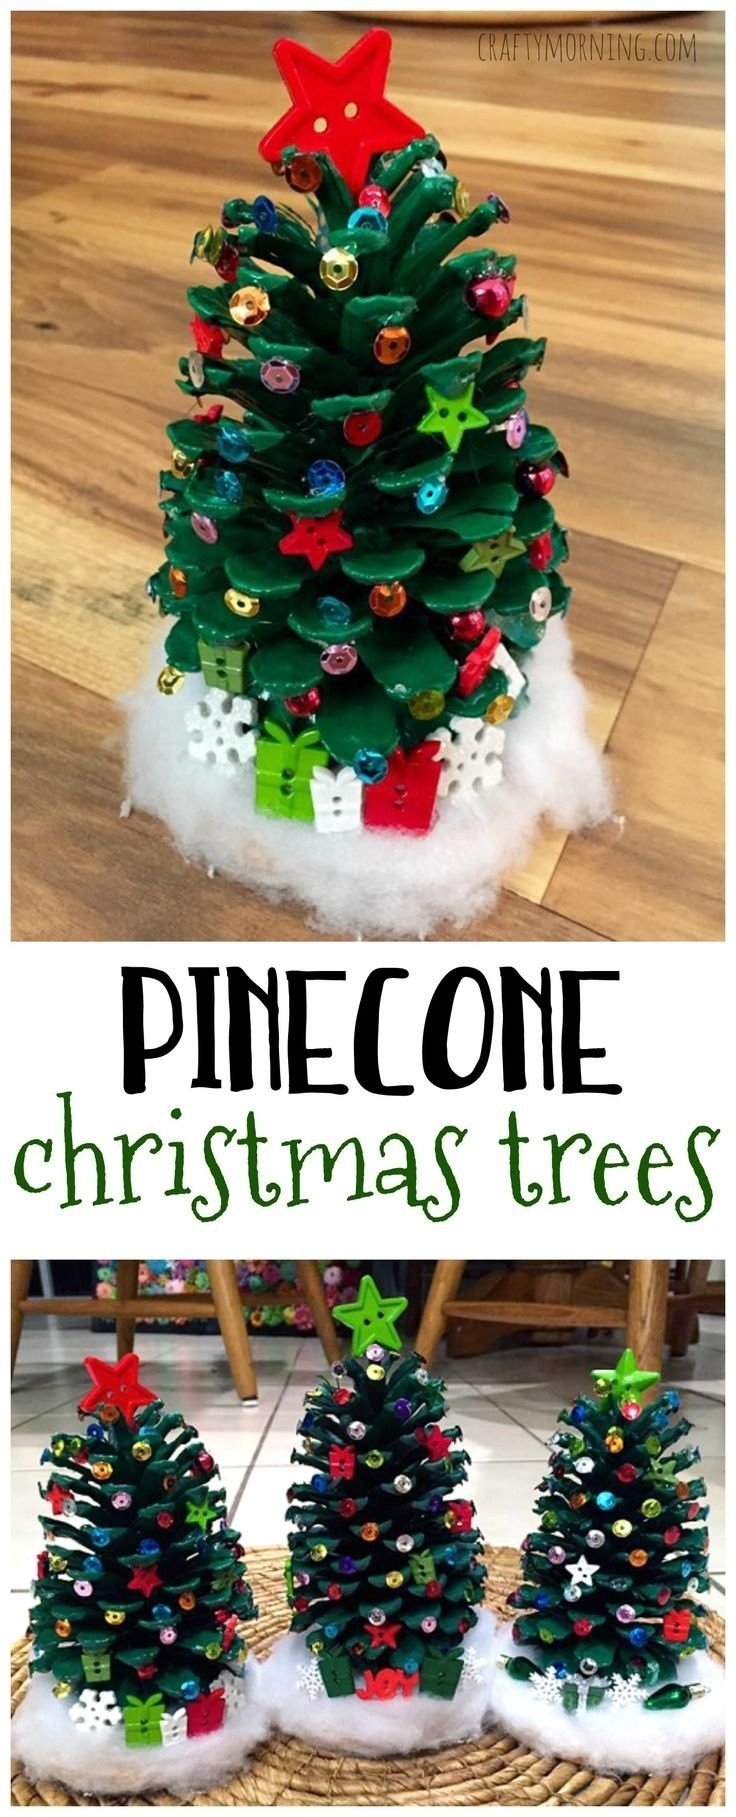 10 Stylish Christmas Craft Ideas For Kids To Make christmas craft ideas for children to make craft get ideas 2021